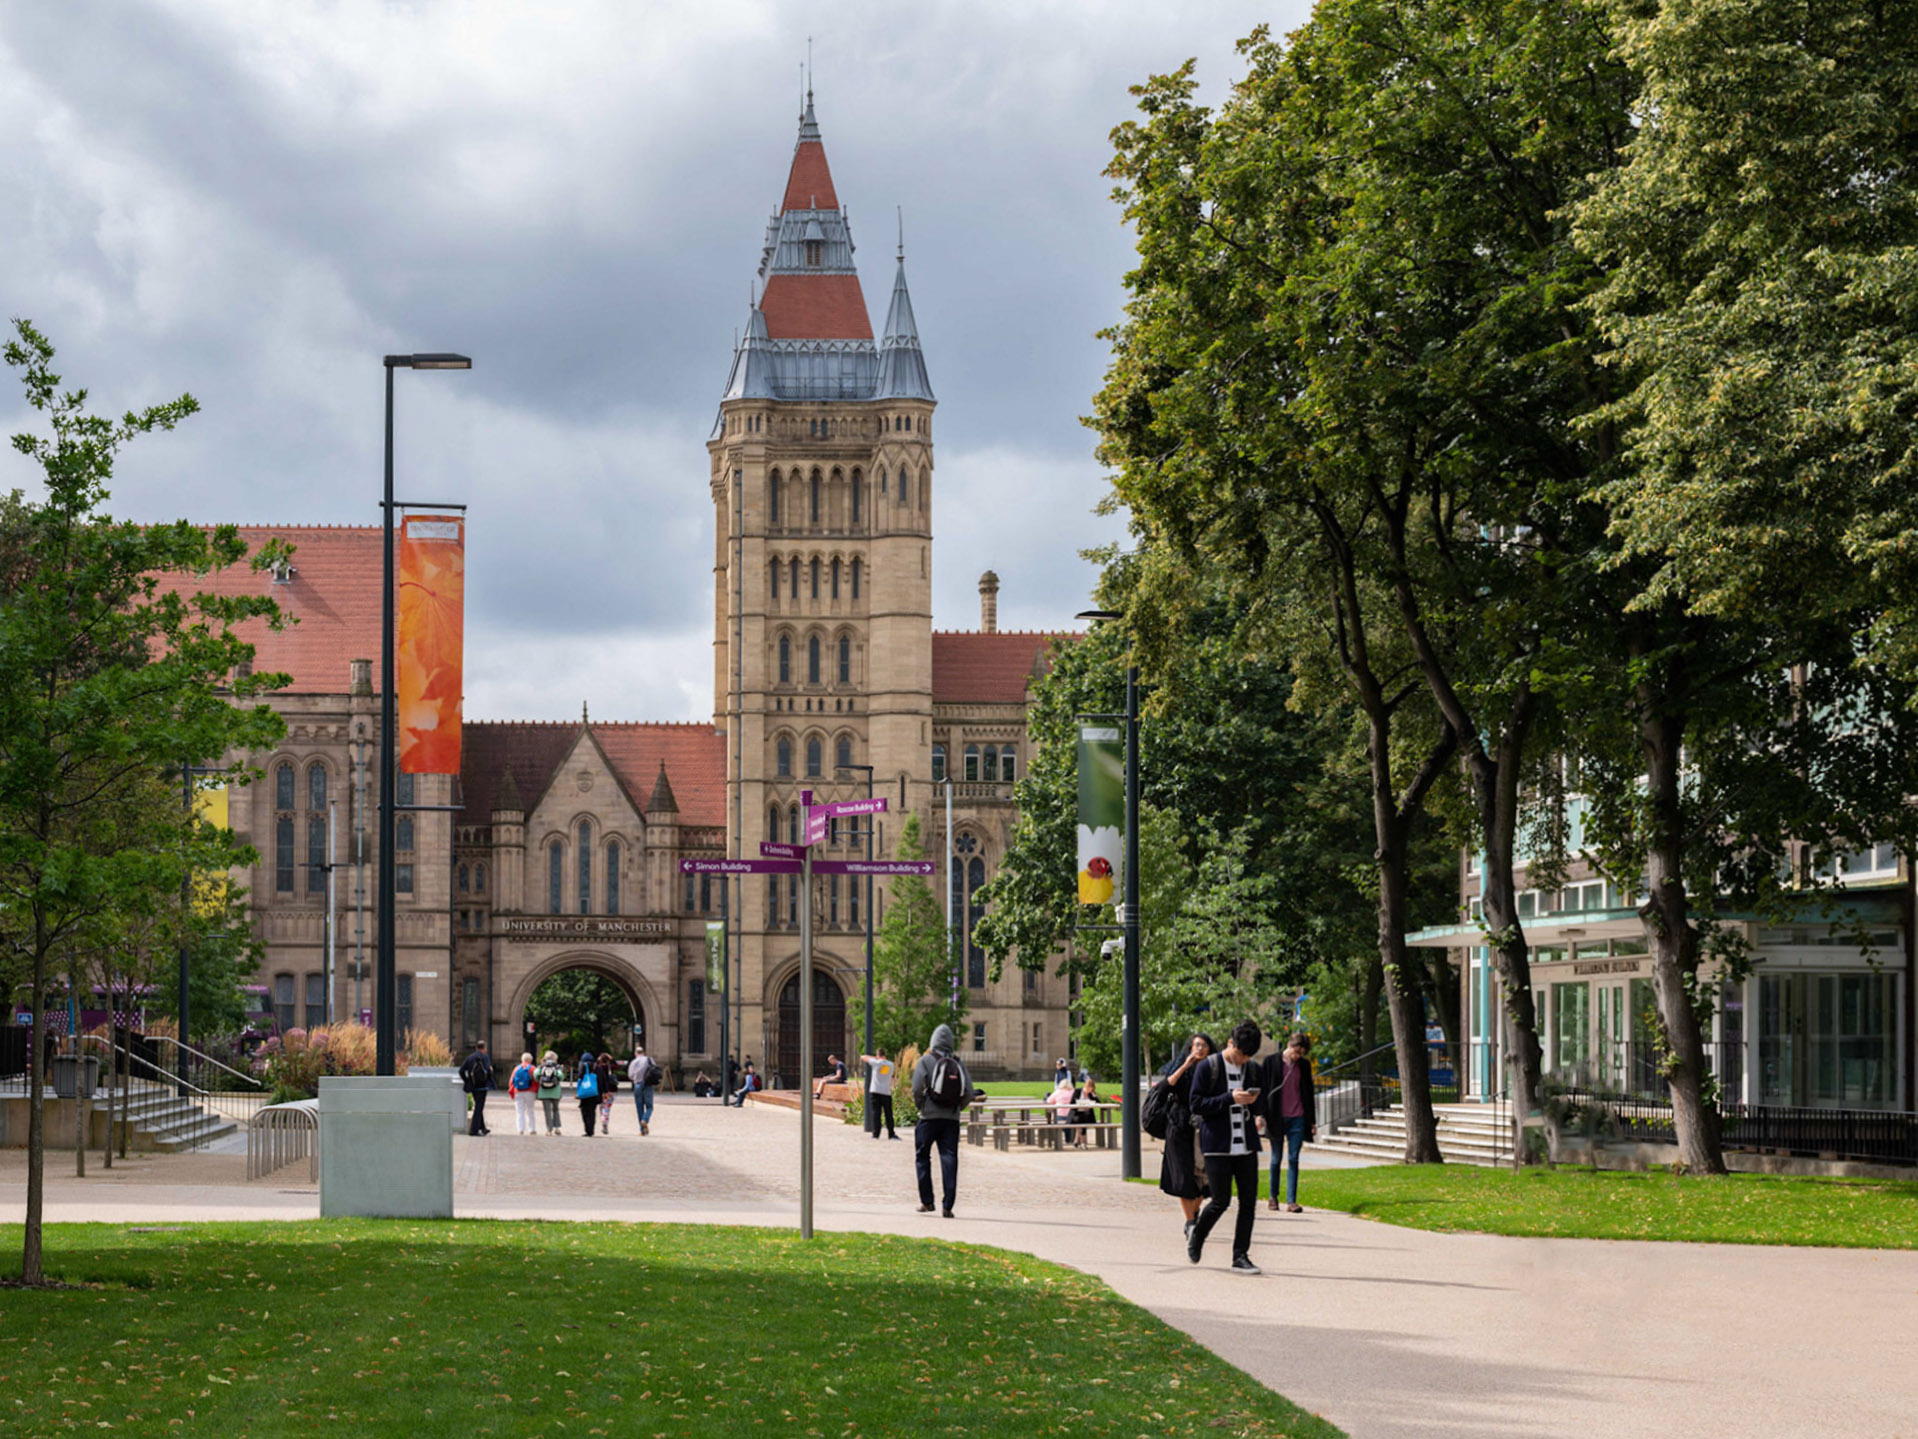 University of Manchester Martyn Hicks Photography